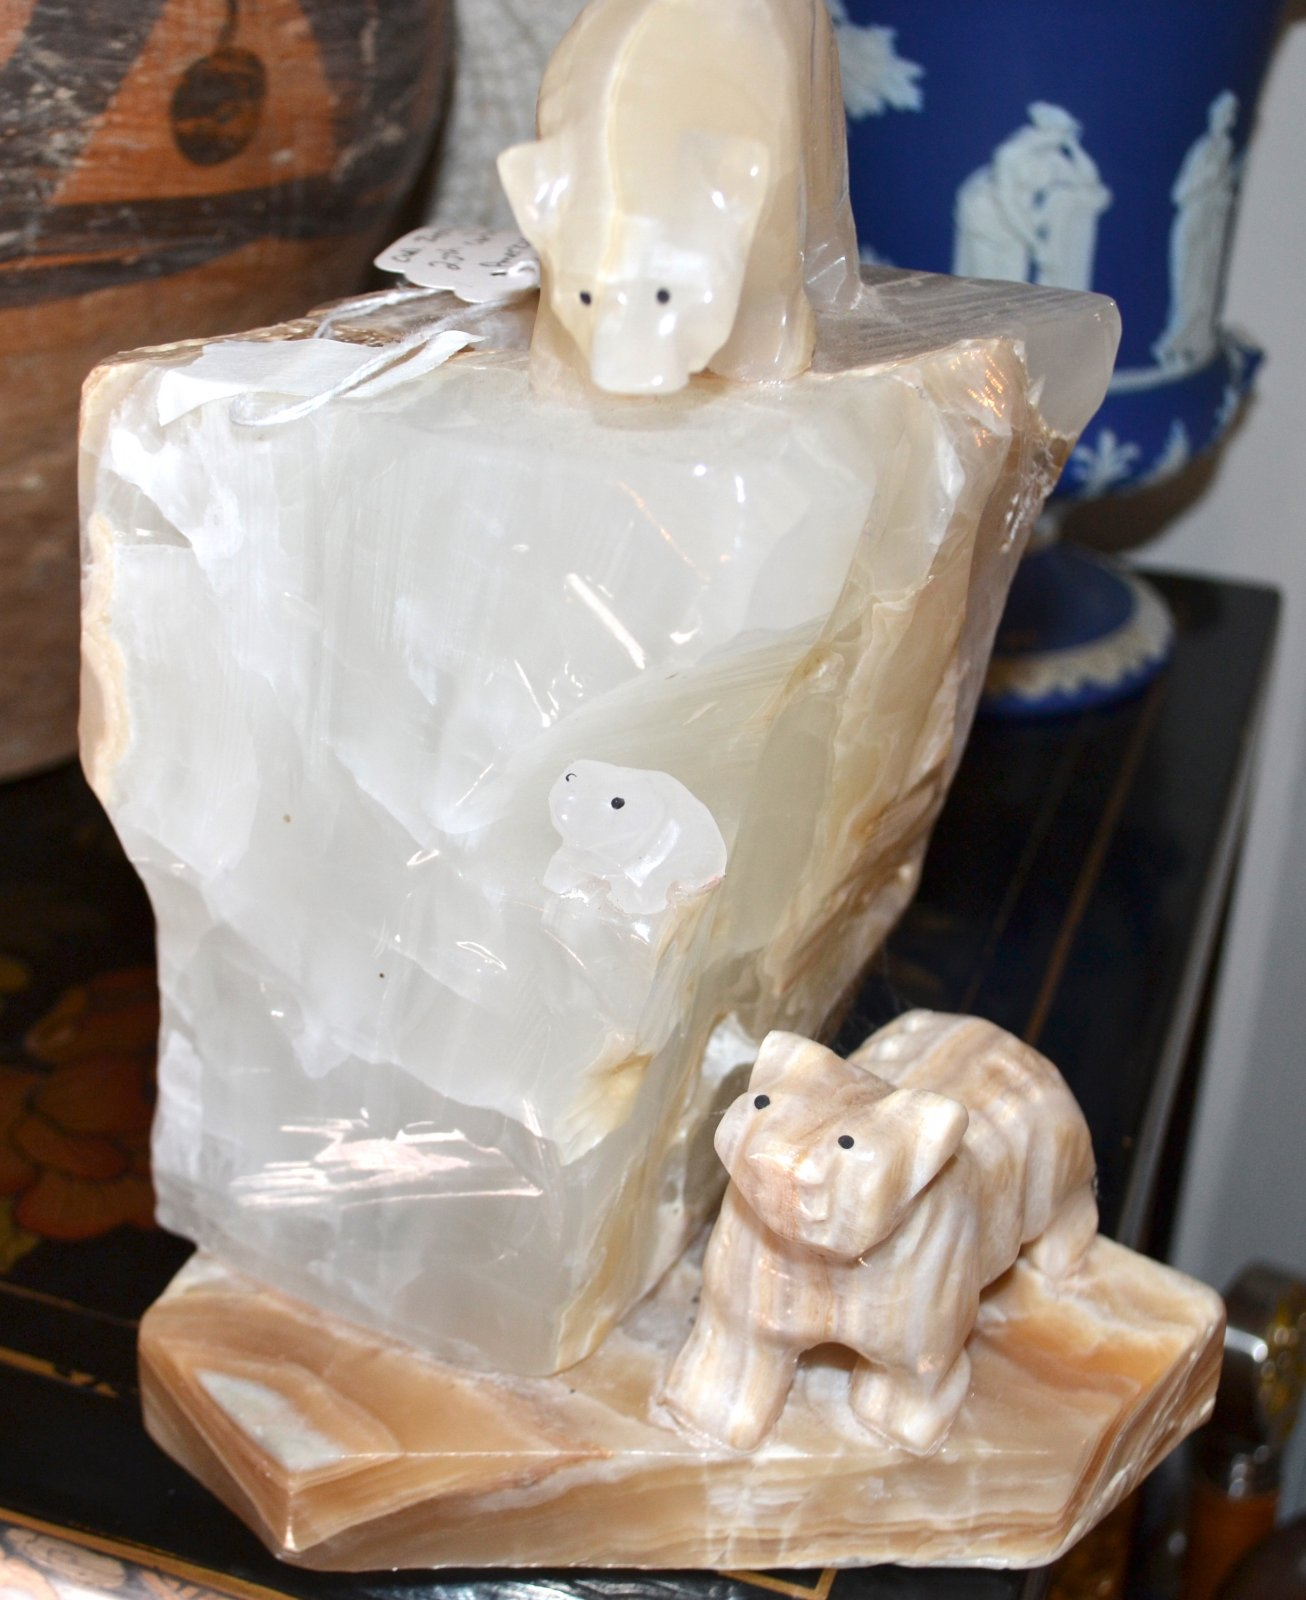 Quartz crystal lighted statue of a rock with bears